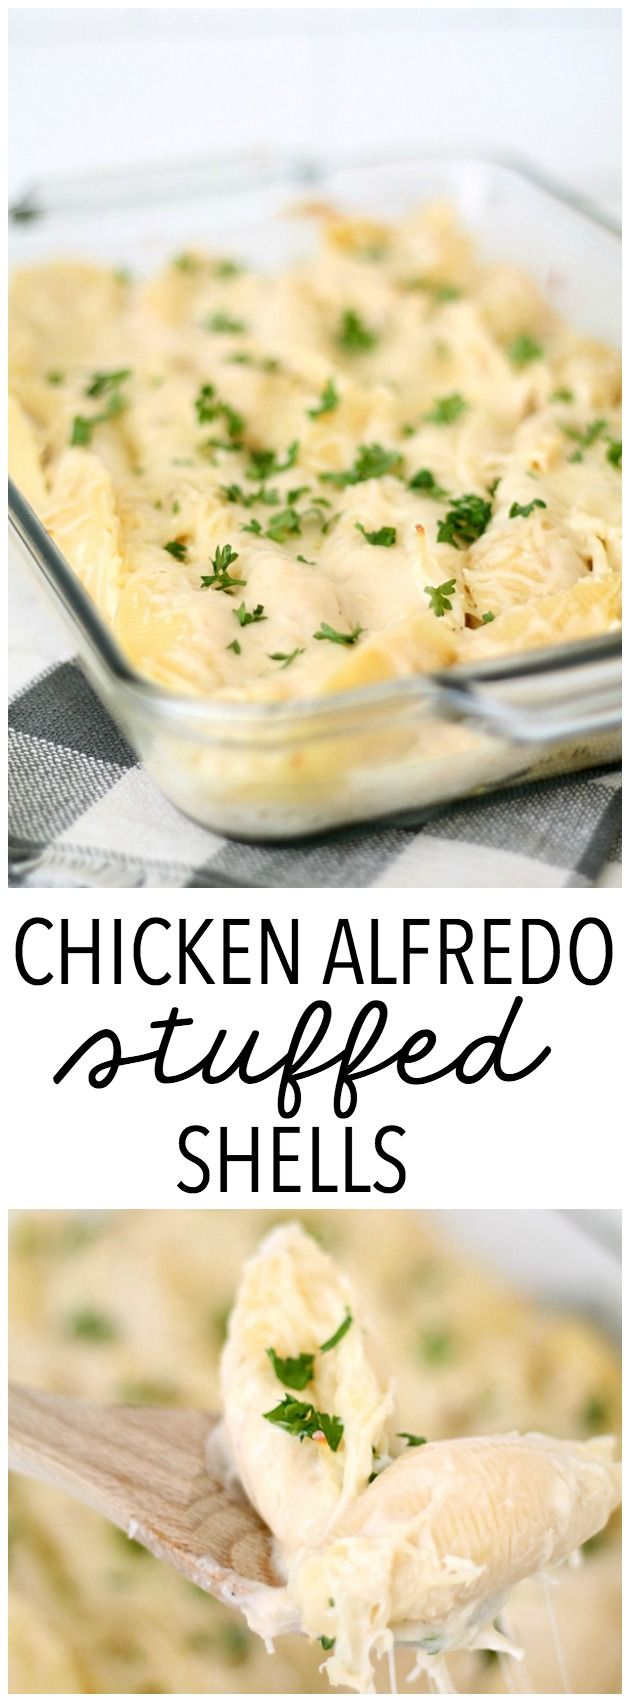 Chicken Alfredo Stuffed Shells Recipe from SixSistersStuff.com. Even my picky eaters devoured this!